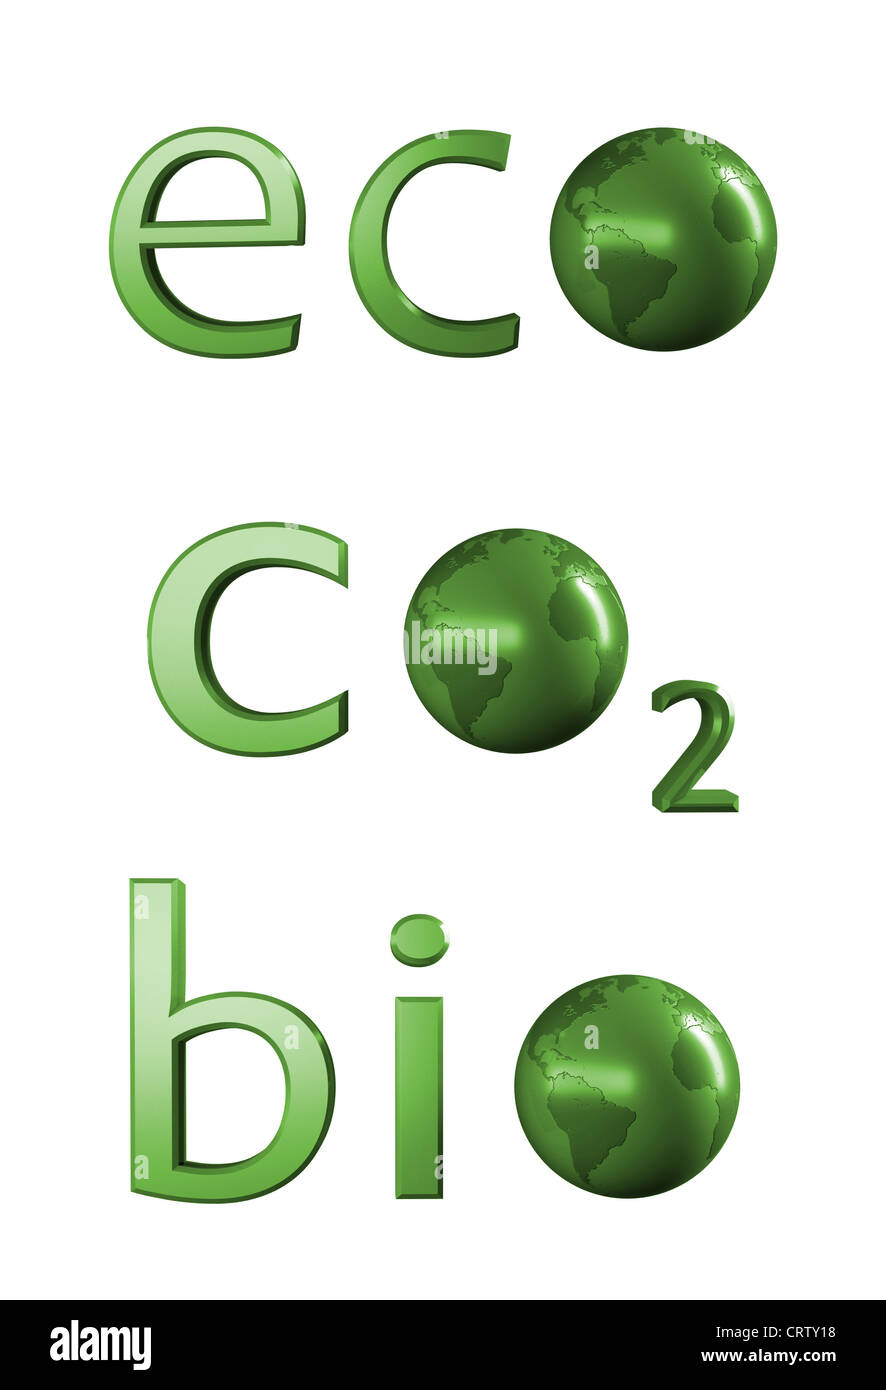 Ecology related 3D text - Stock Image